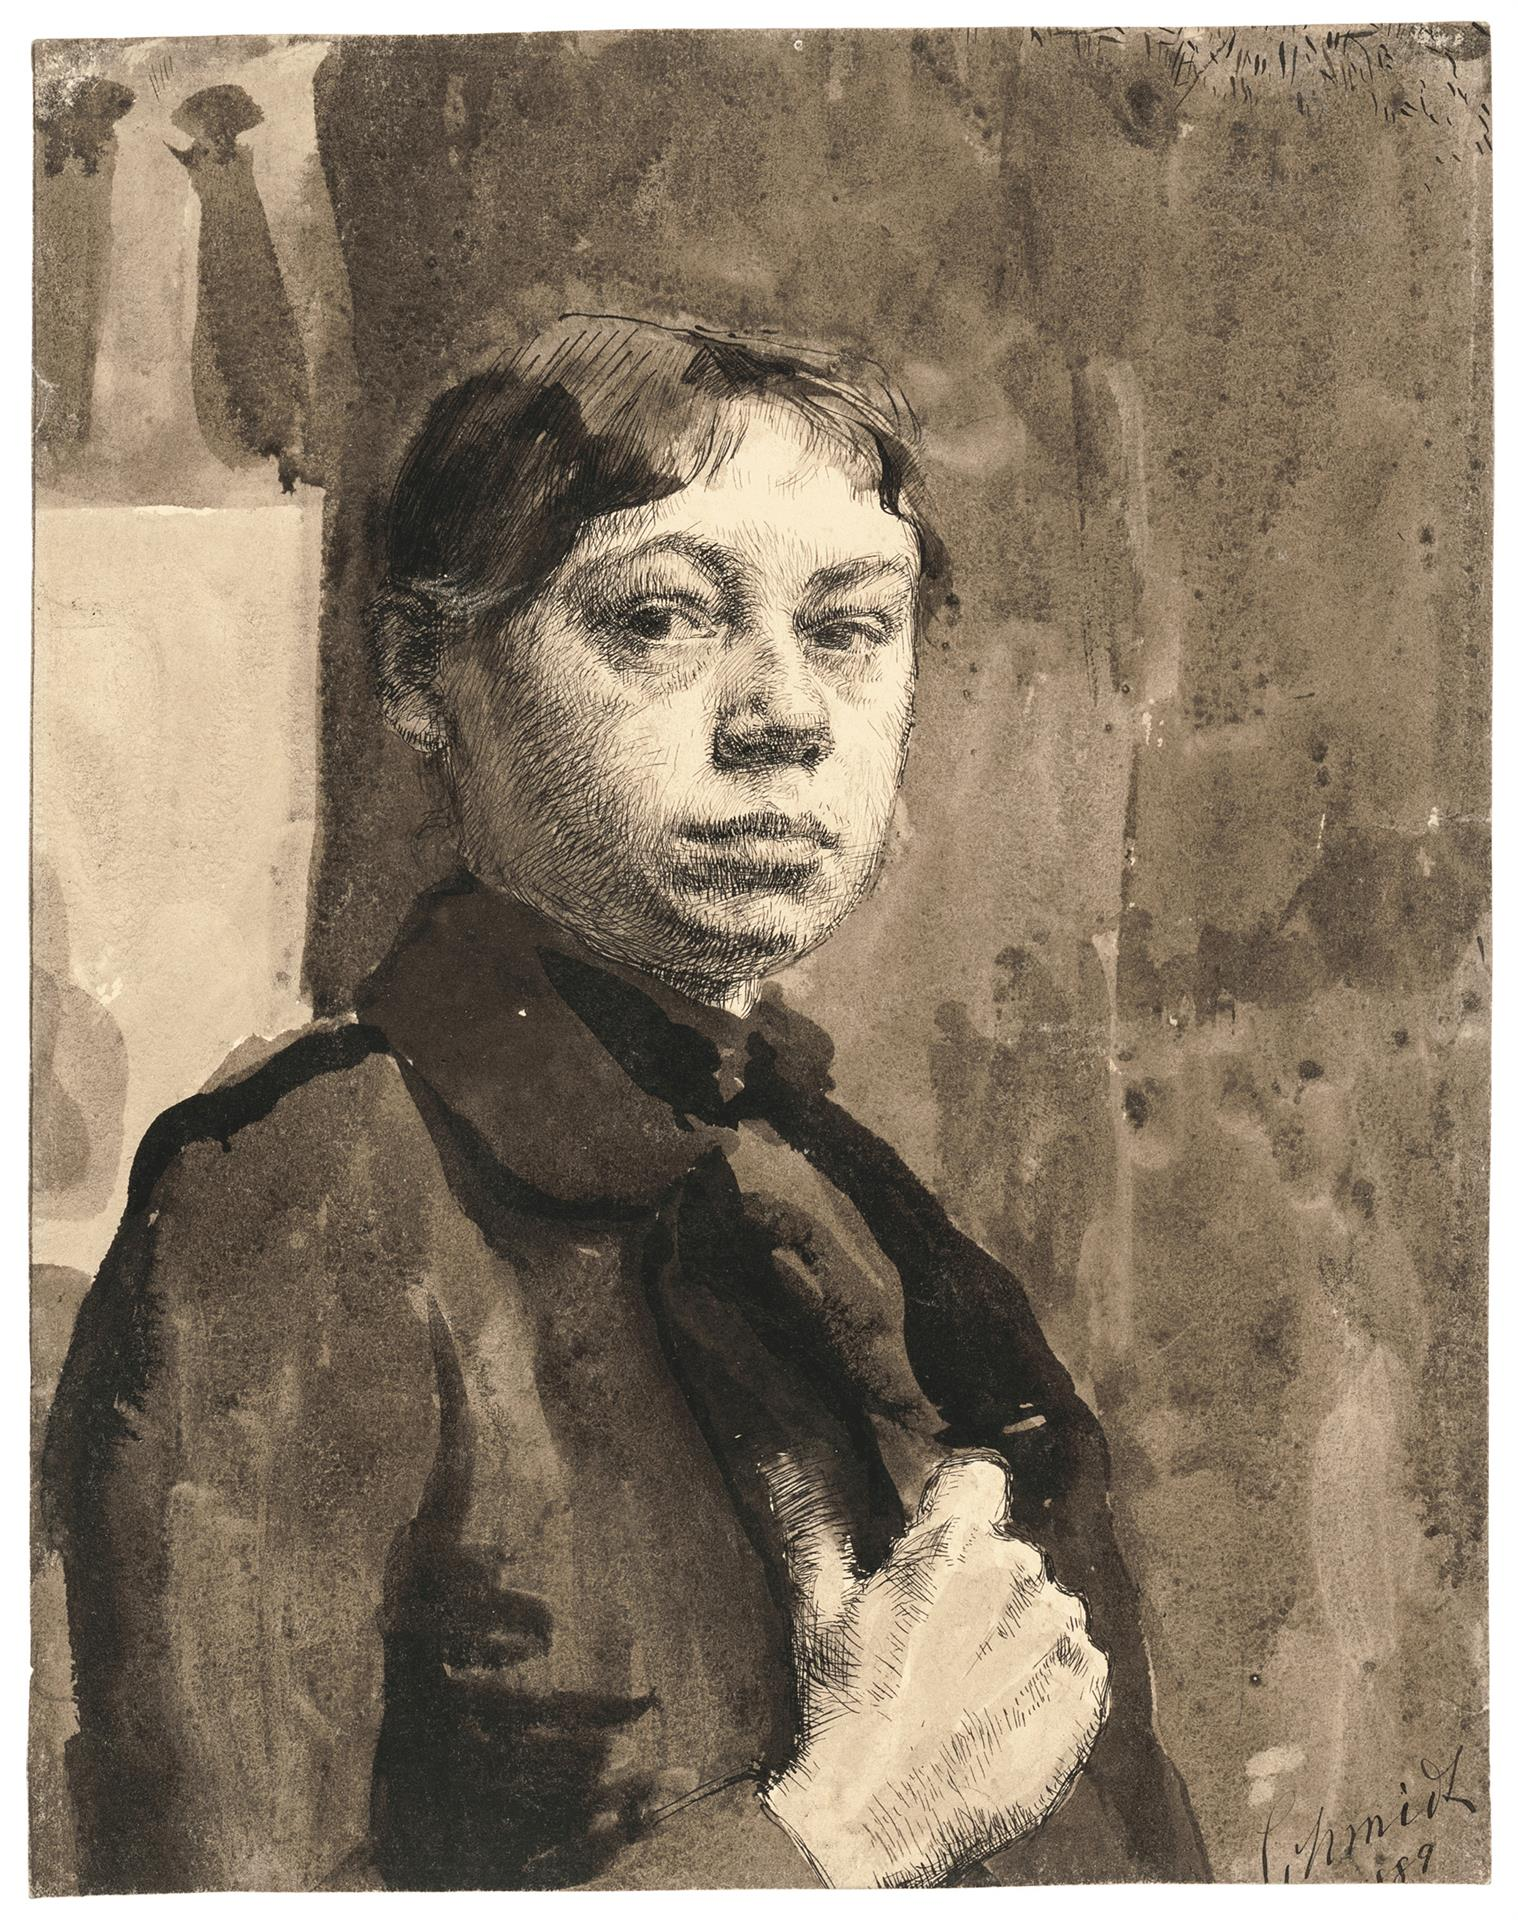 Käthe Kollwitz, Self-portrait, 1899, pen and black ink and brush and sepia on drawing cardboard, NT 12, Cologne Kollwitz Collection © Käthe Kollwitz Museum Köln